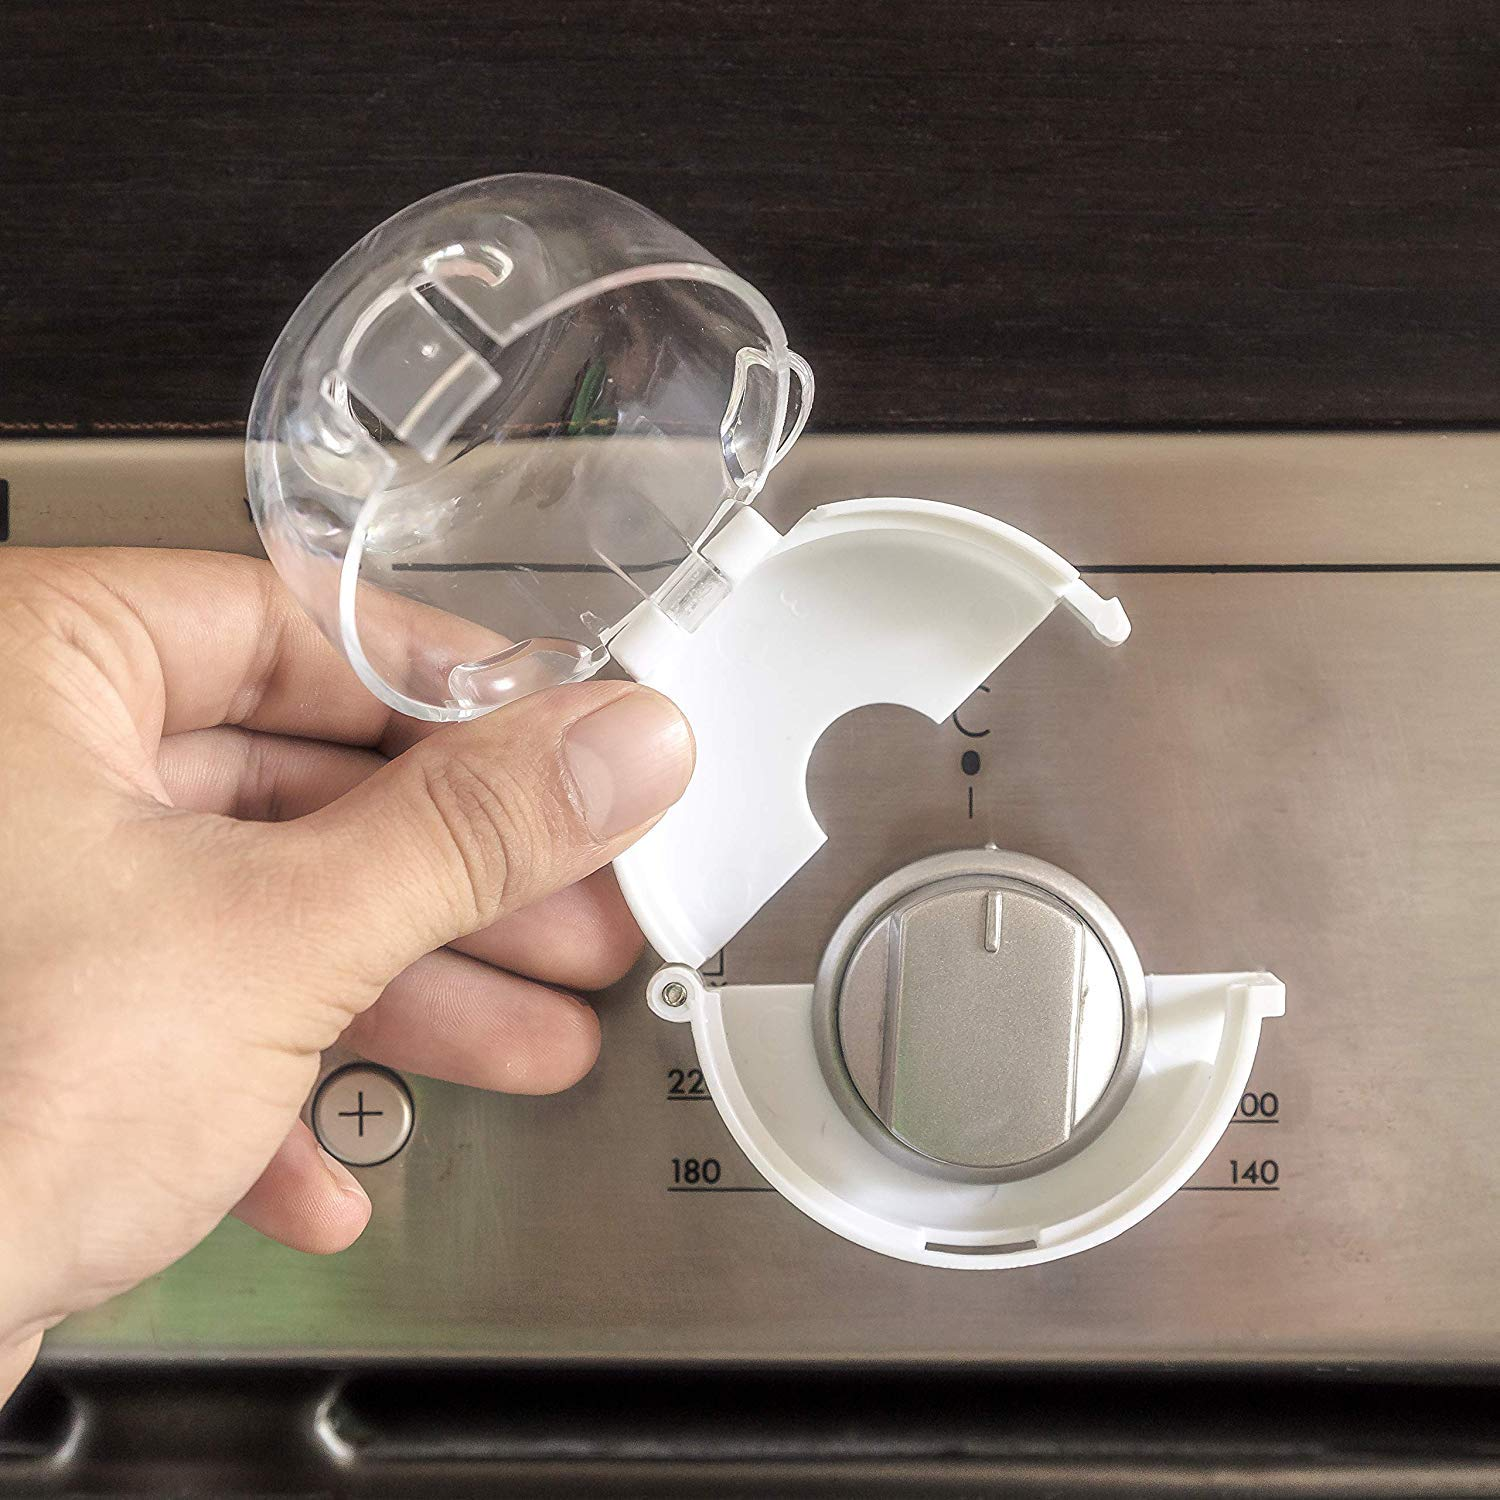 REFURBISHHOUSE Clear Safety Oven Knobs Cover 4 Pack Baby Proofing Protection Lock for Ovens//Stoves When Kids Protective Durable Knob That Fits Most Ovens Toddler Around Children